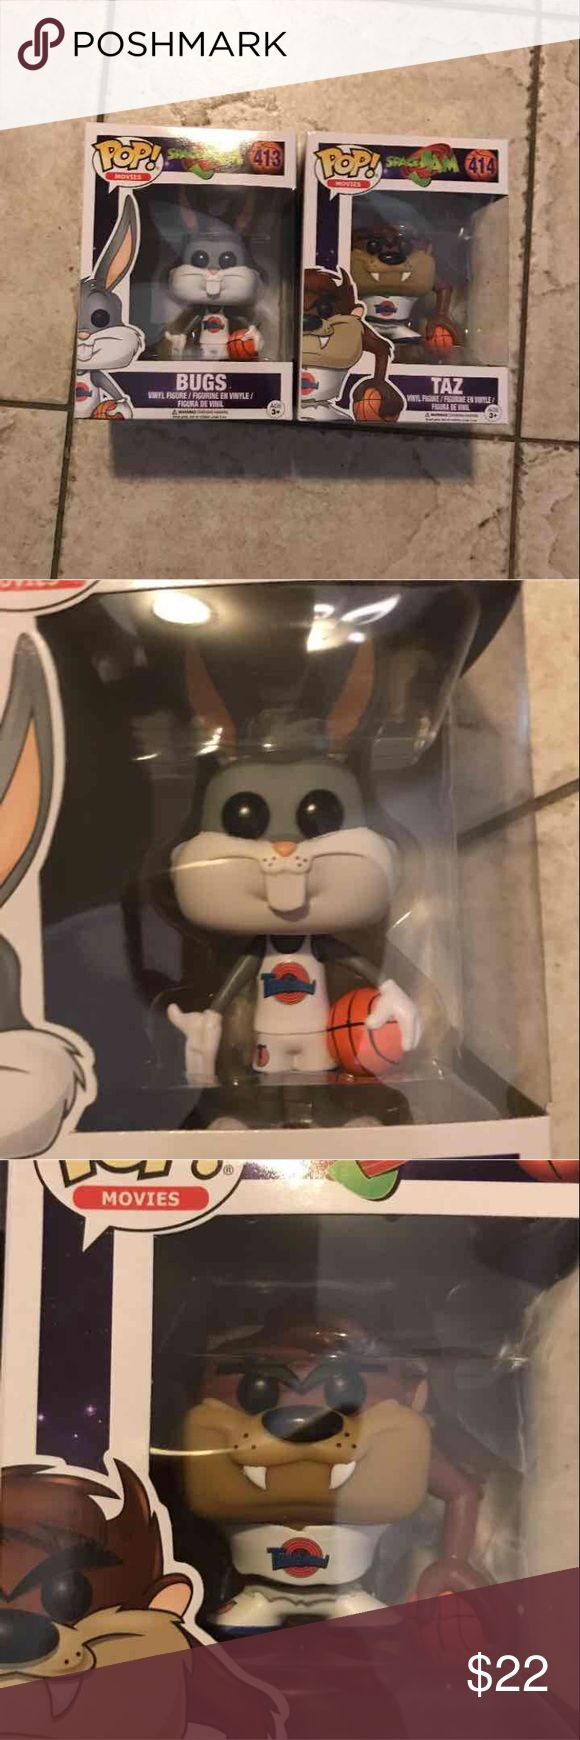 Space Jam BUGS & TAZ Funko Pops BRAND NEW IN BOX*NO TRADES *PRICE IS FIRM #Pop Movies  #Warner Brothers #Looney Tunes Accessories